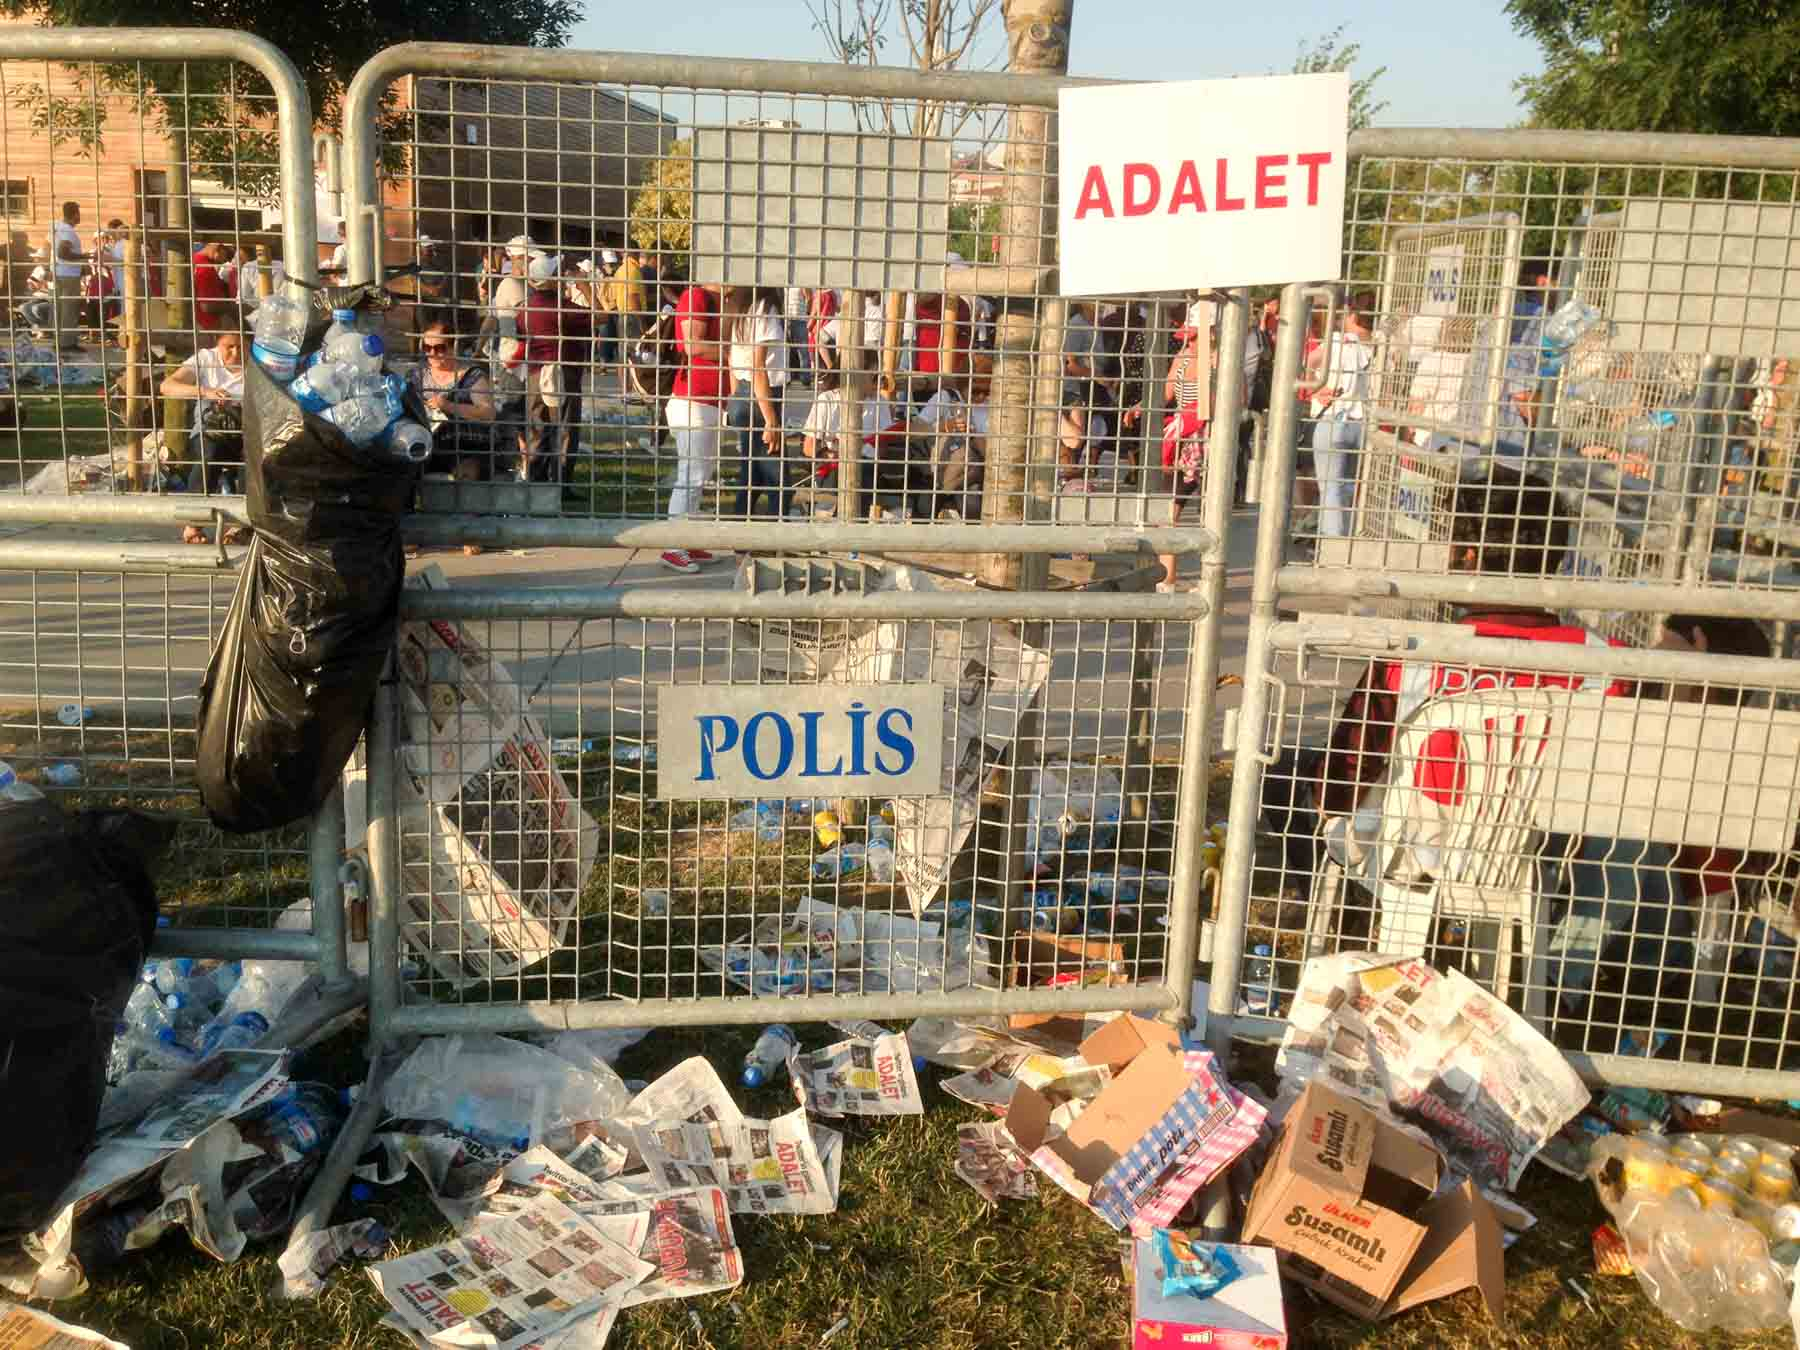 adalet - march for justice